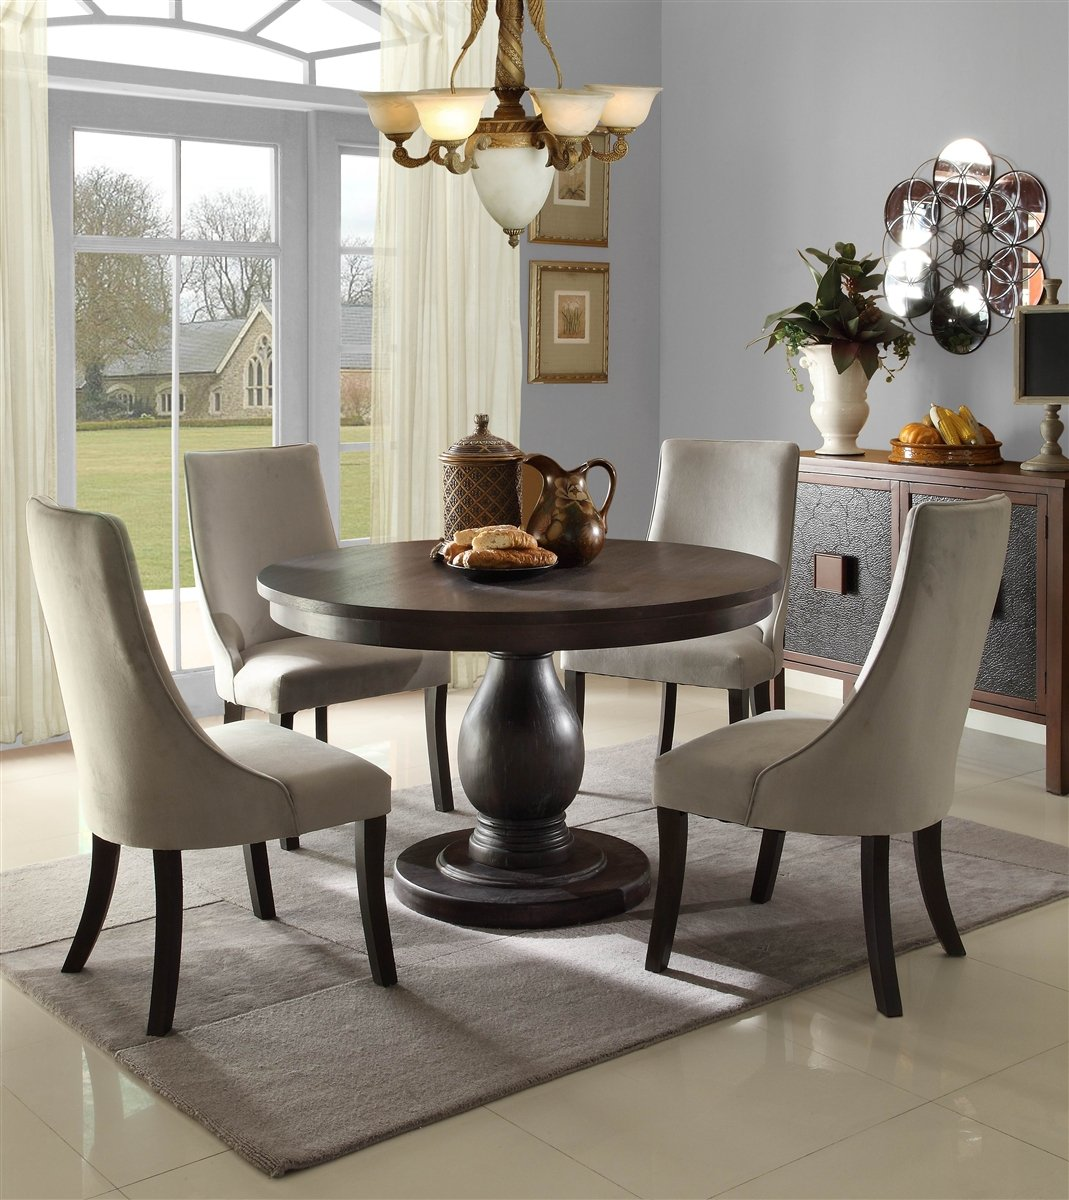 Amazon com  Dandelion 5 PC Dining Table Set by Home Elegance in Rustic  Brown  Kitchen   Dining. Amazon com  Dandelion 5 PC Dining Table Set by Home Elegance in